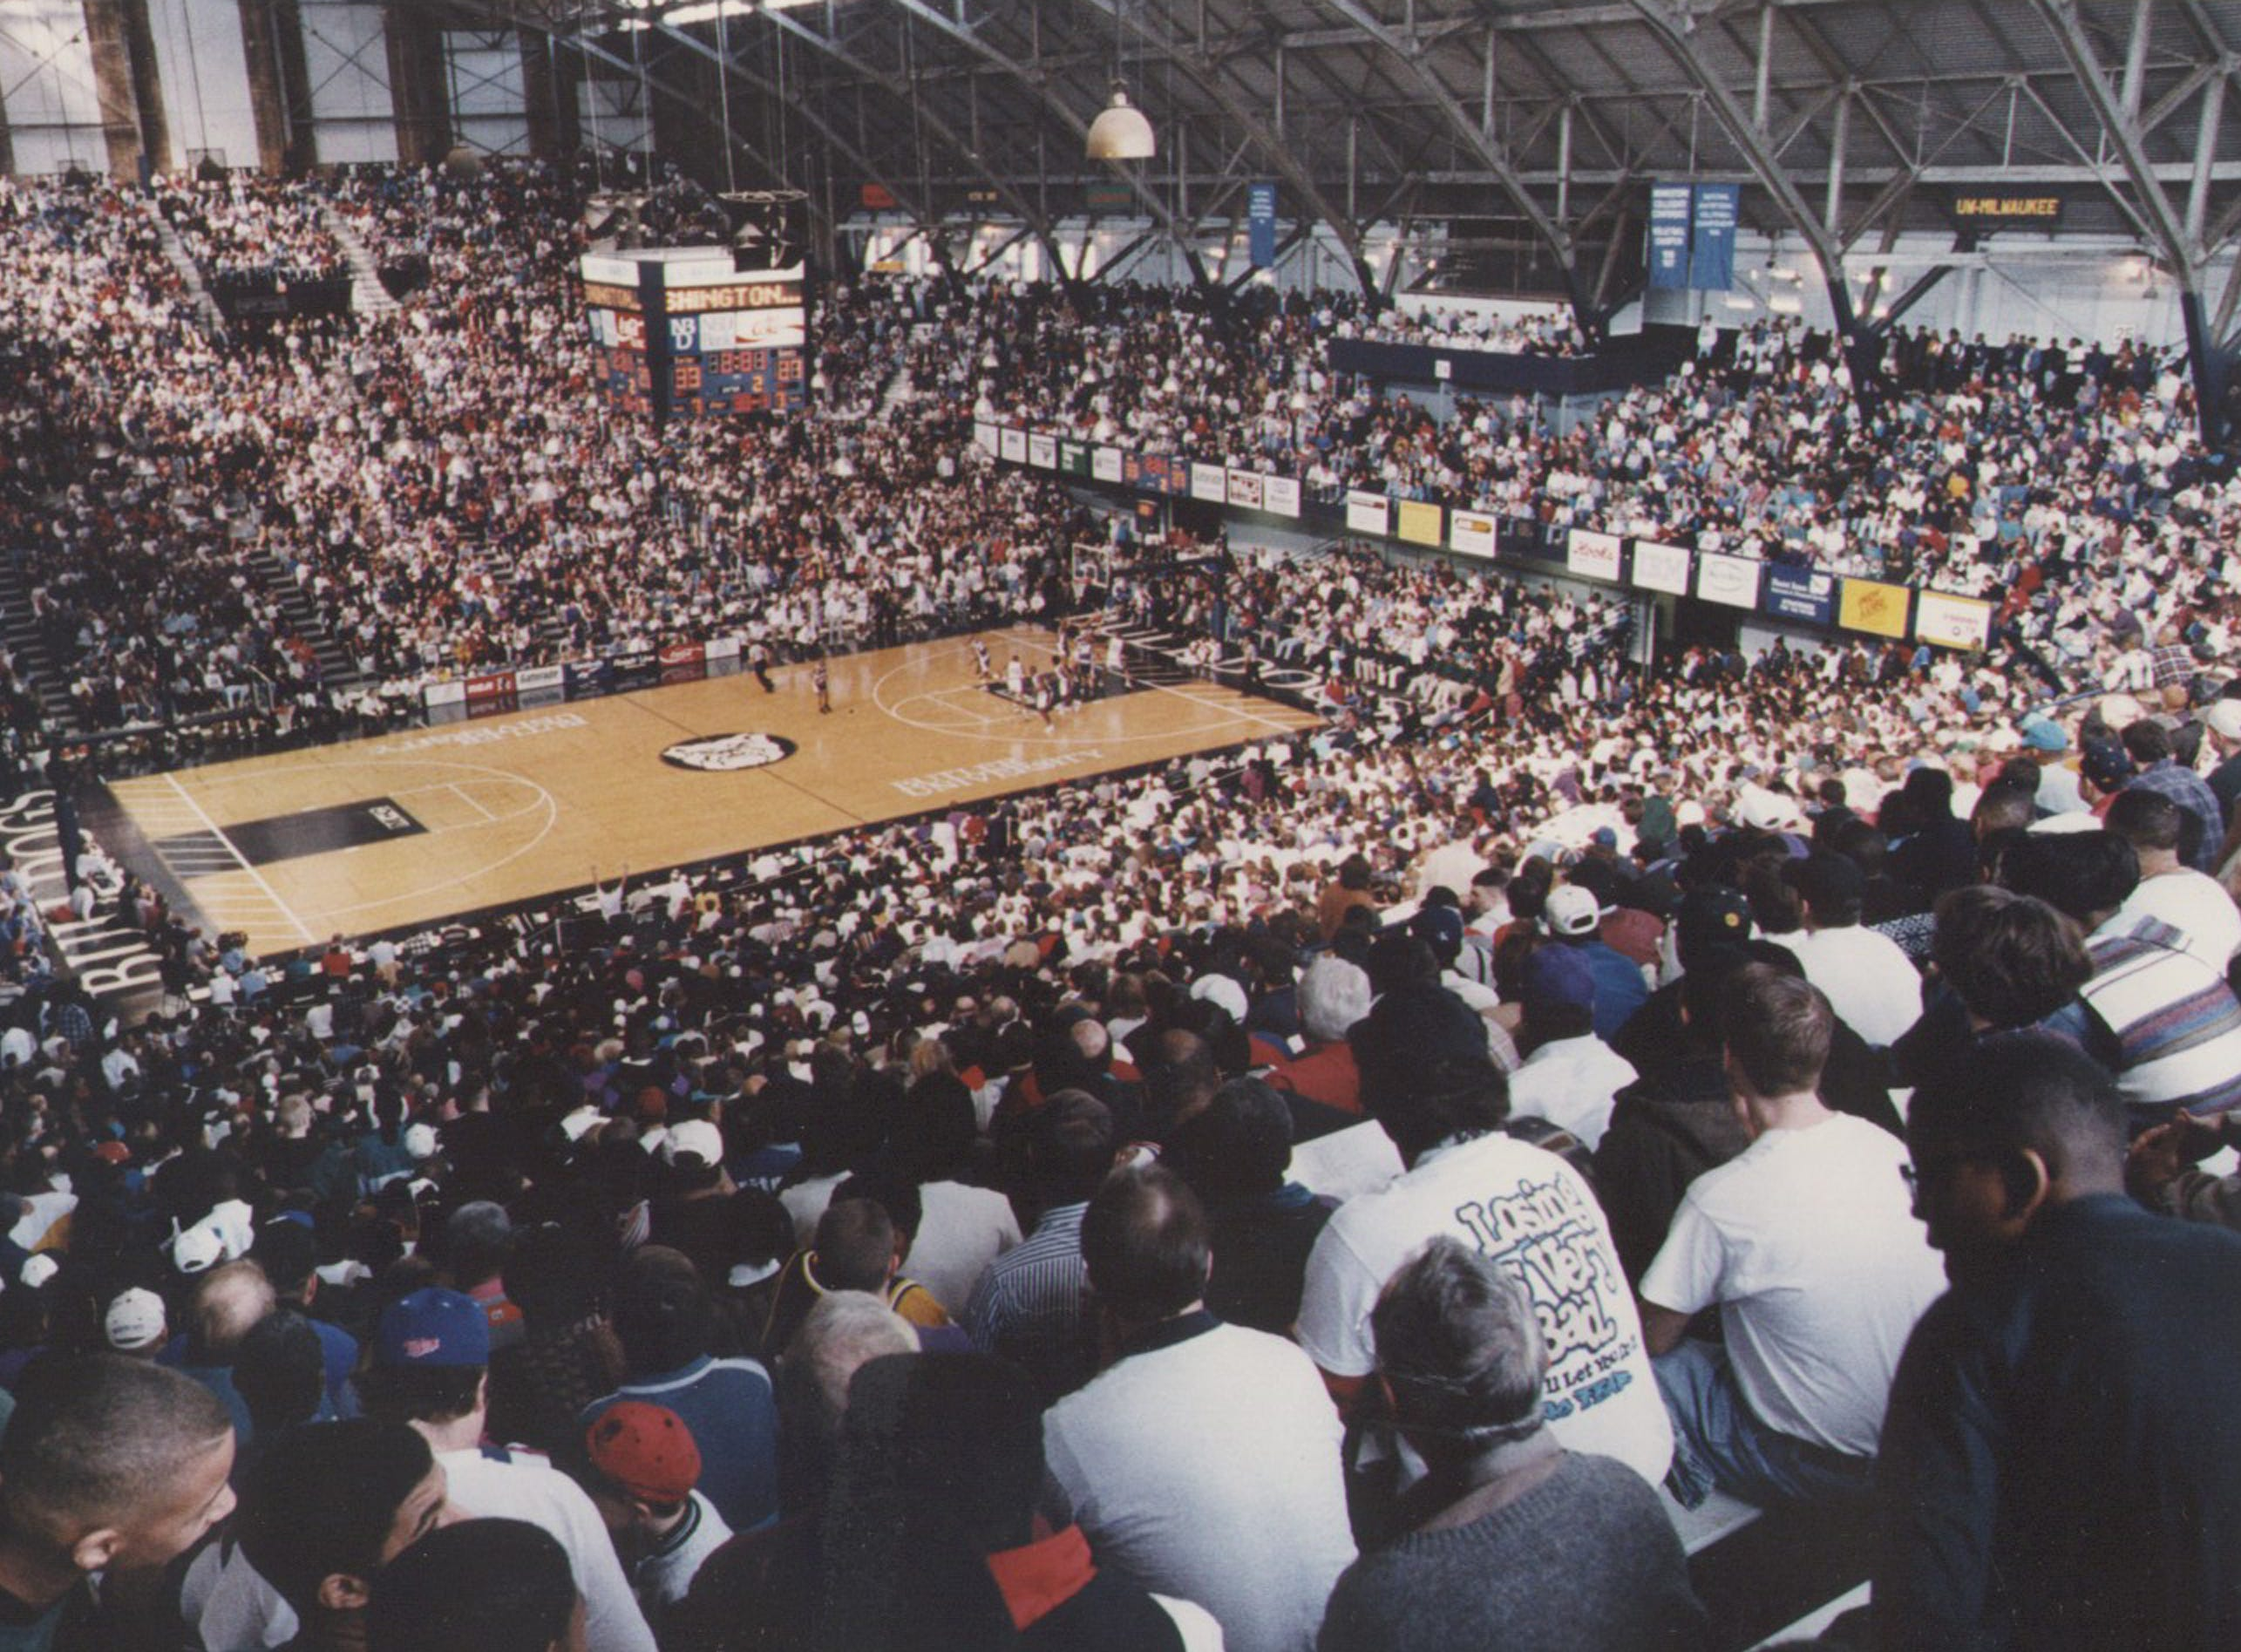 Hinkle Fieldhouse was filled to the rafters with 11,000 fans for the game as Ben Davis and Washington met in the Hinkle Regional March 11, 1995.  Ben Davis won by a buzzer-beater by Ahmed Bellamy.